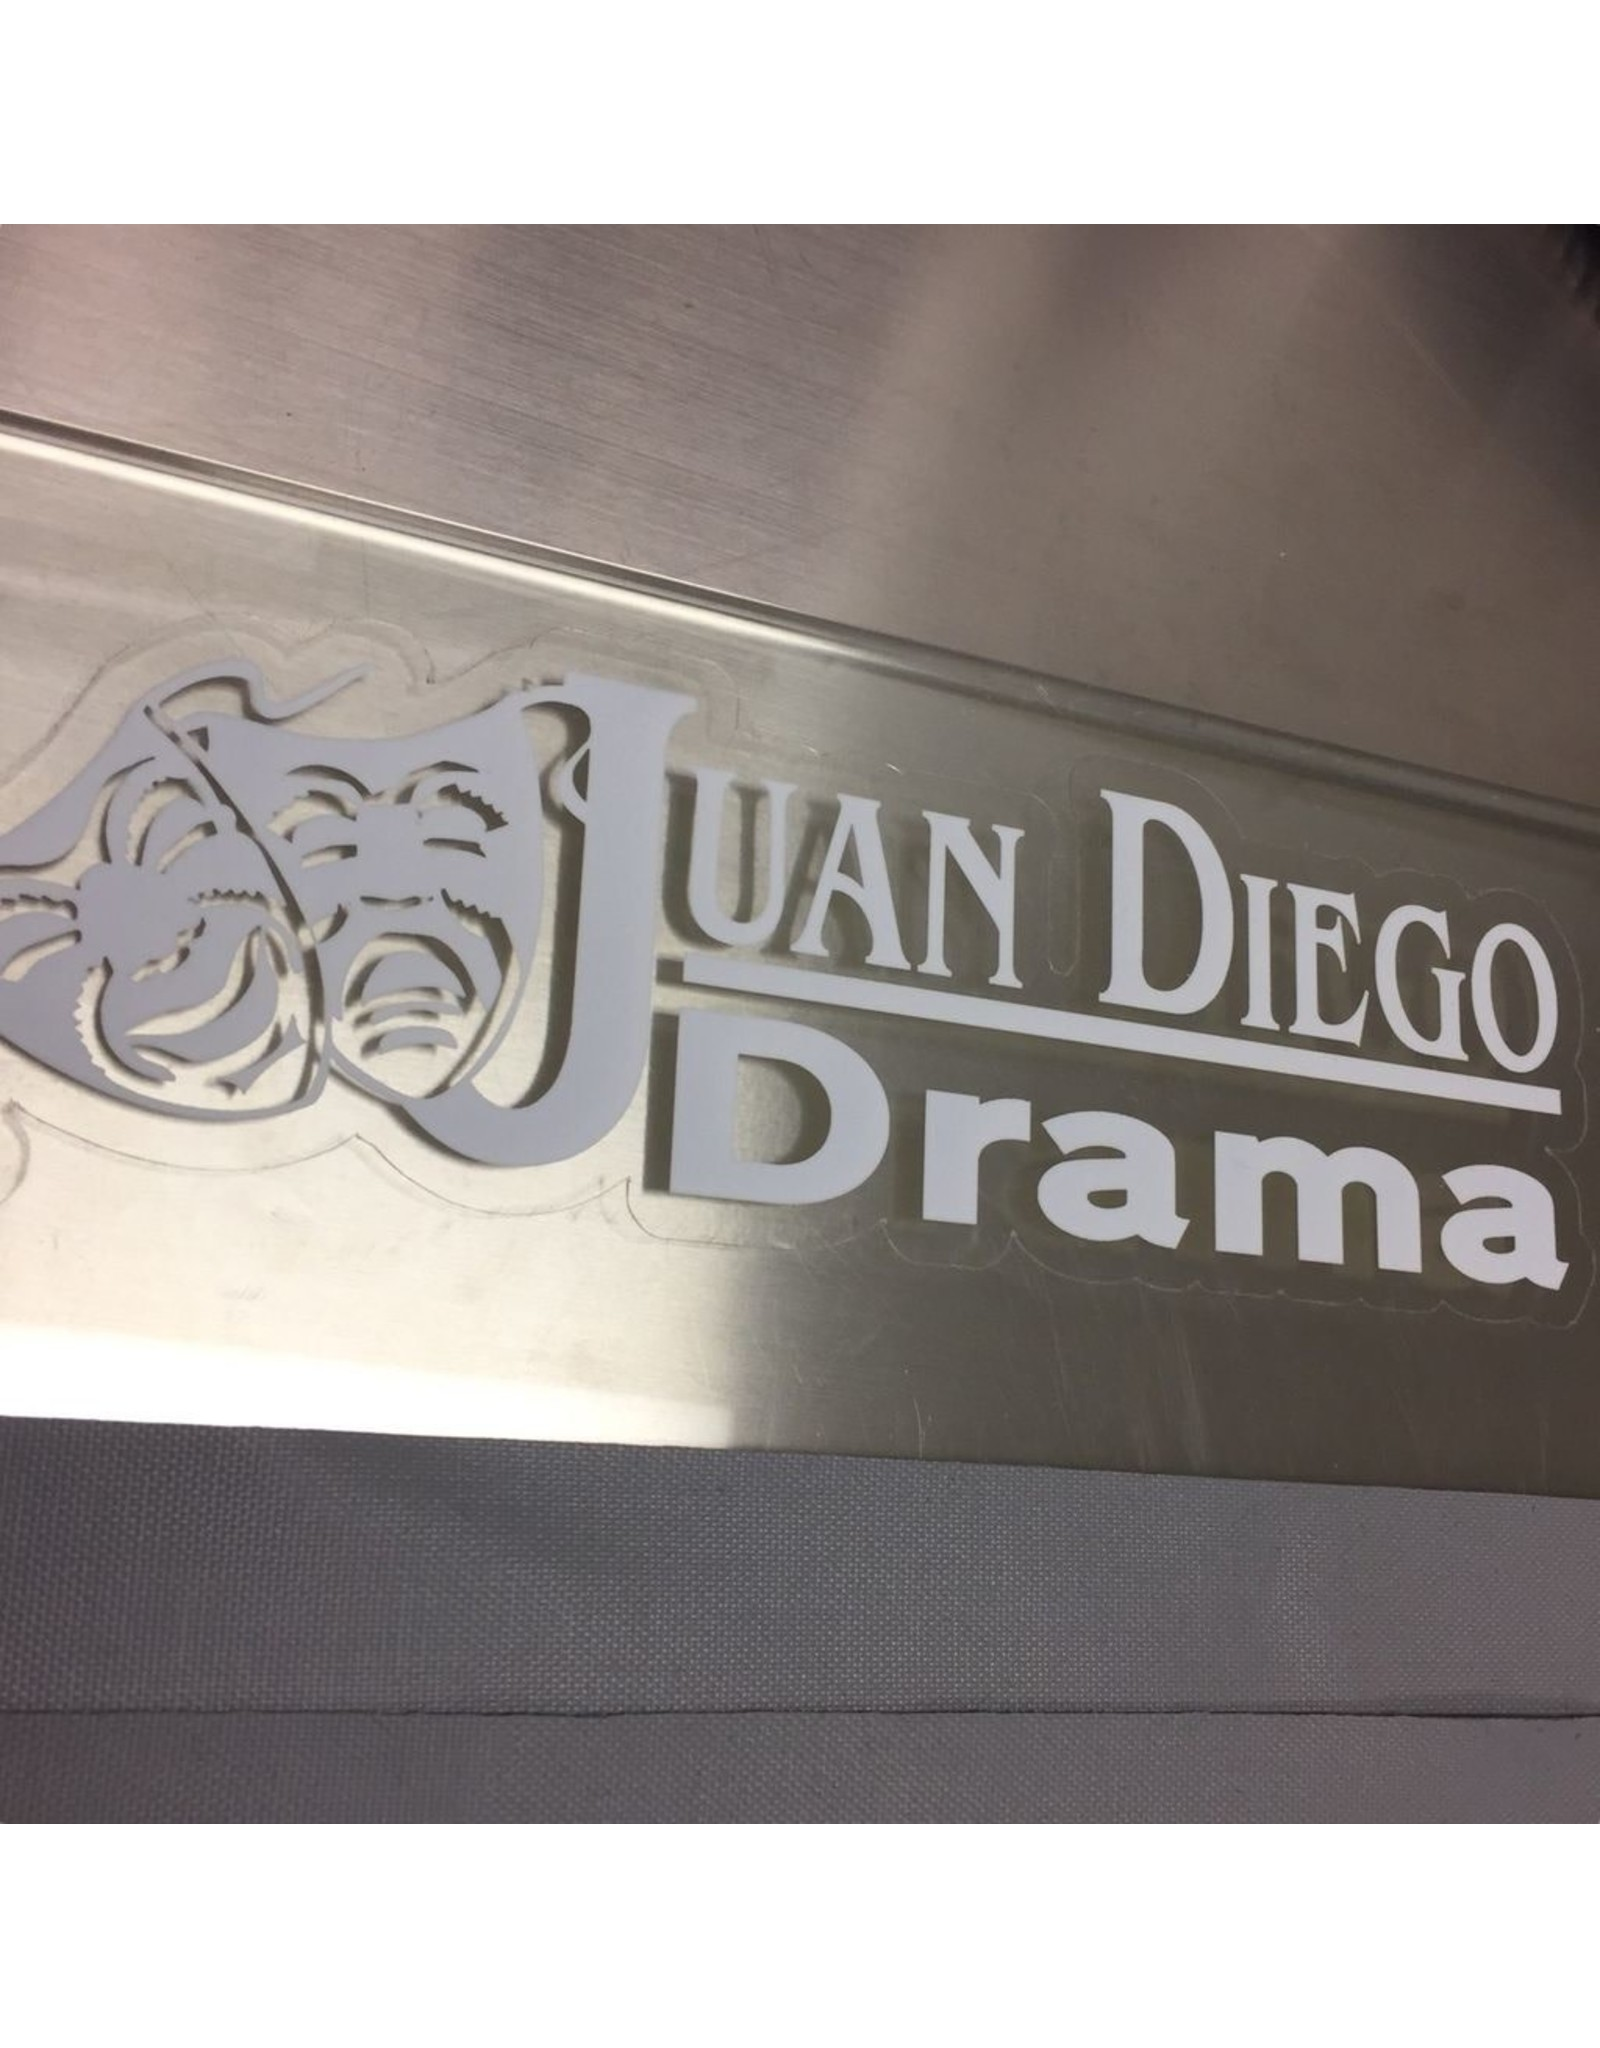 NON-UNIFORM Drama - Decal, clearance, sold as is